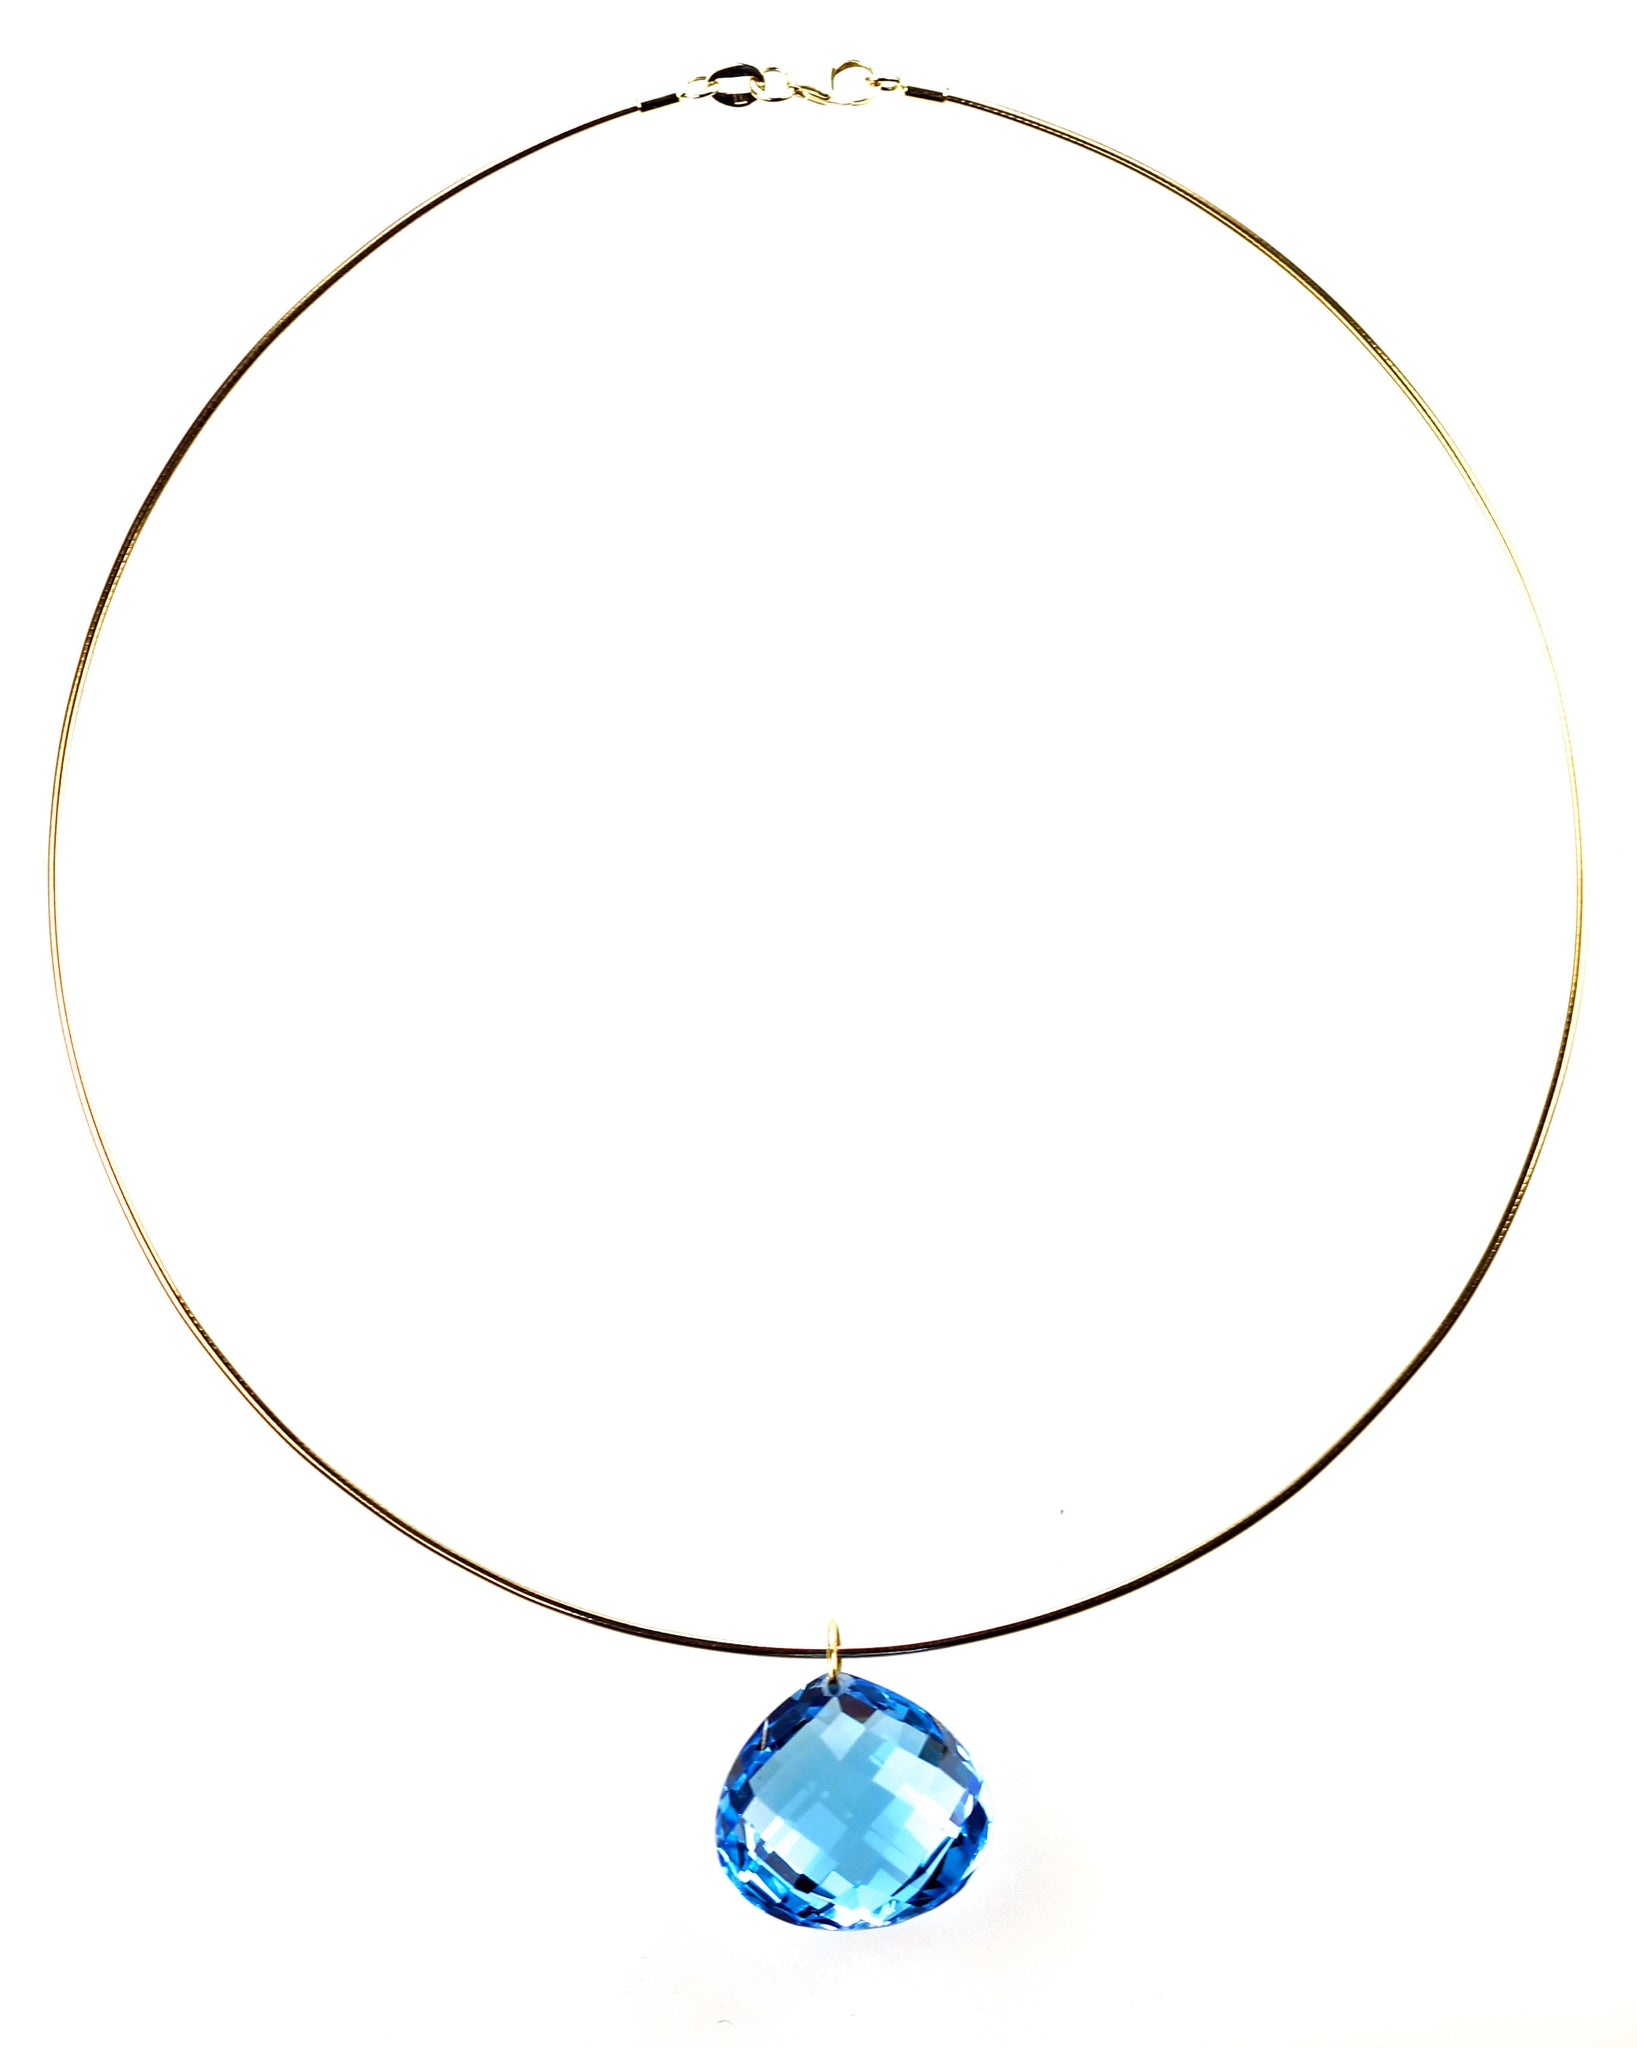 Faceted Blue Topaz Pendant on Wire Necklace, SOLD